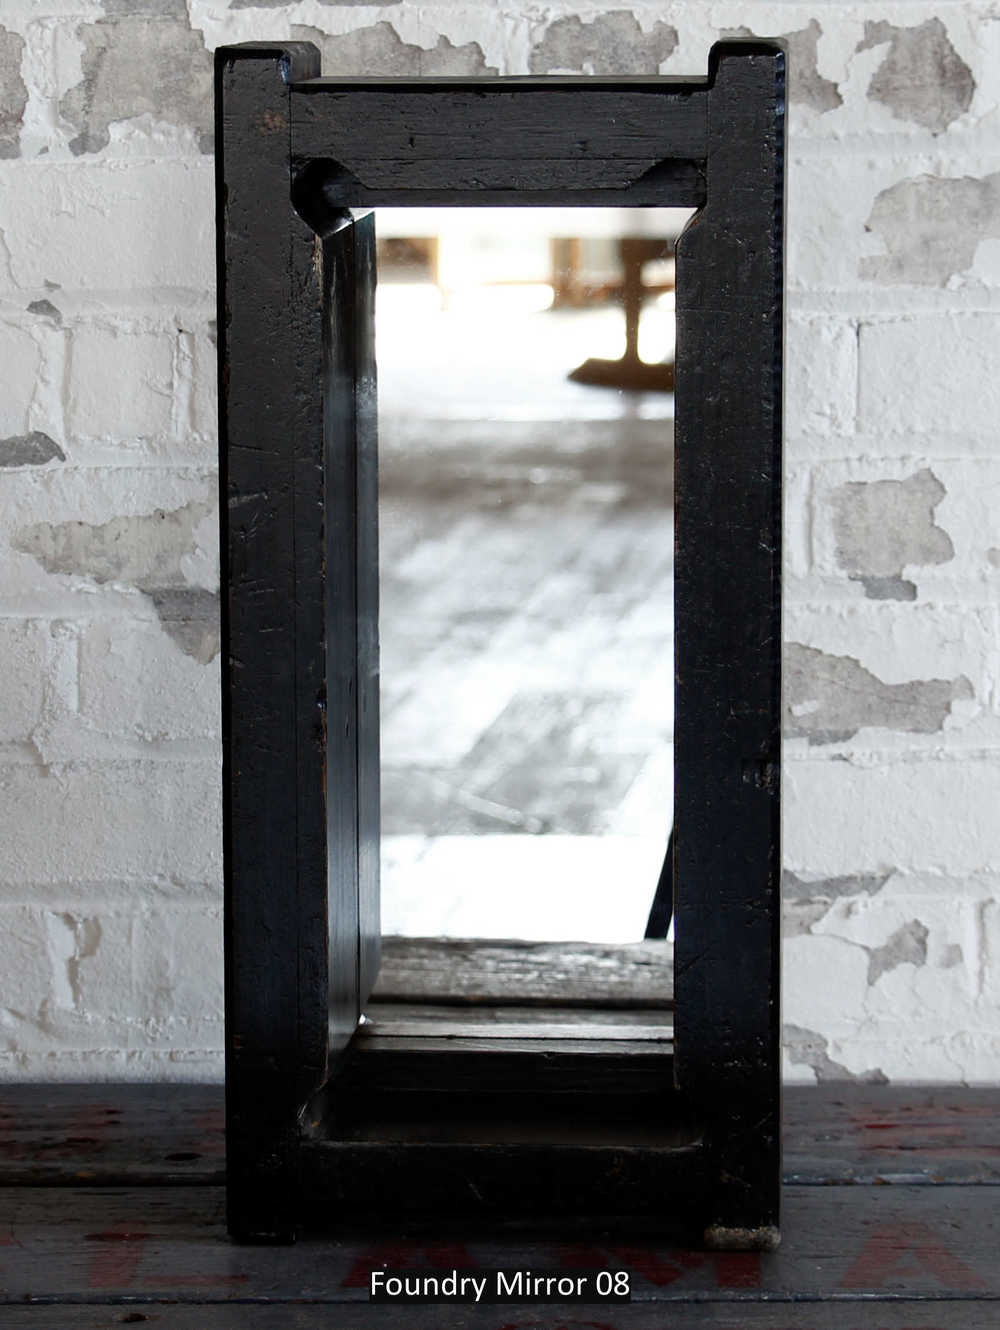 Foundry Mirror #8 of 32